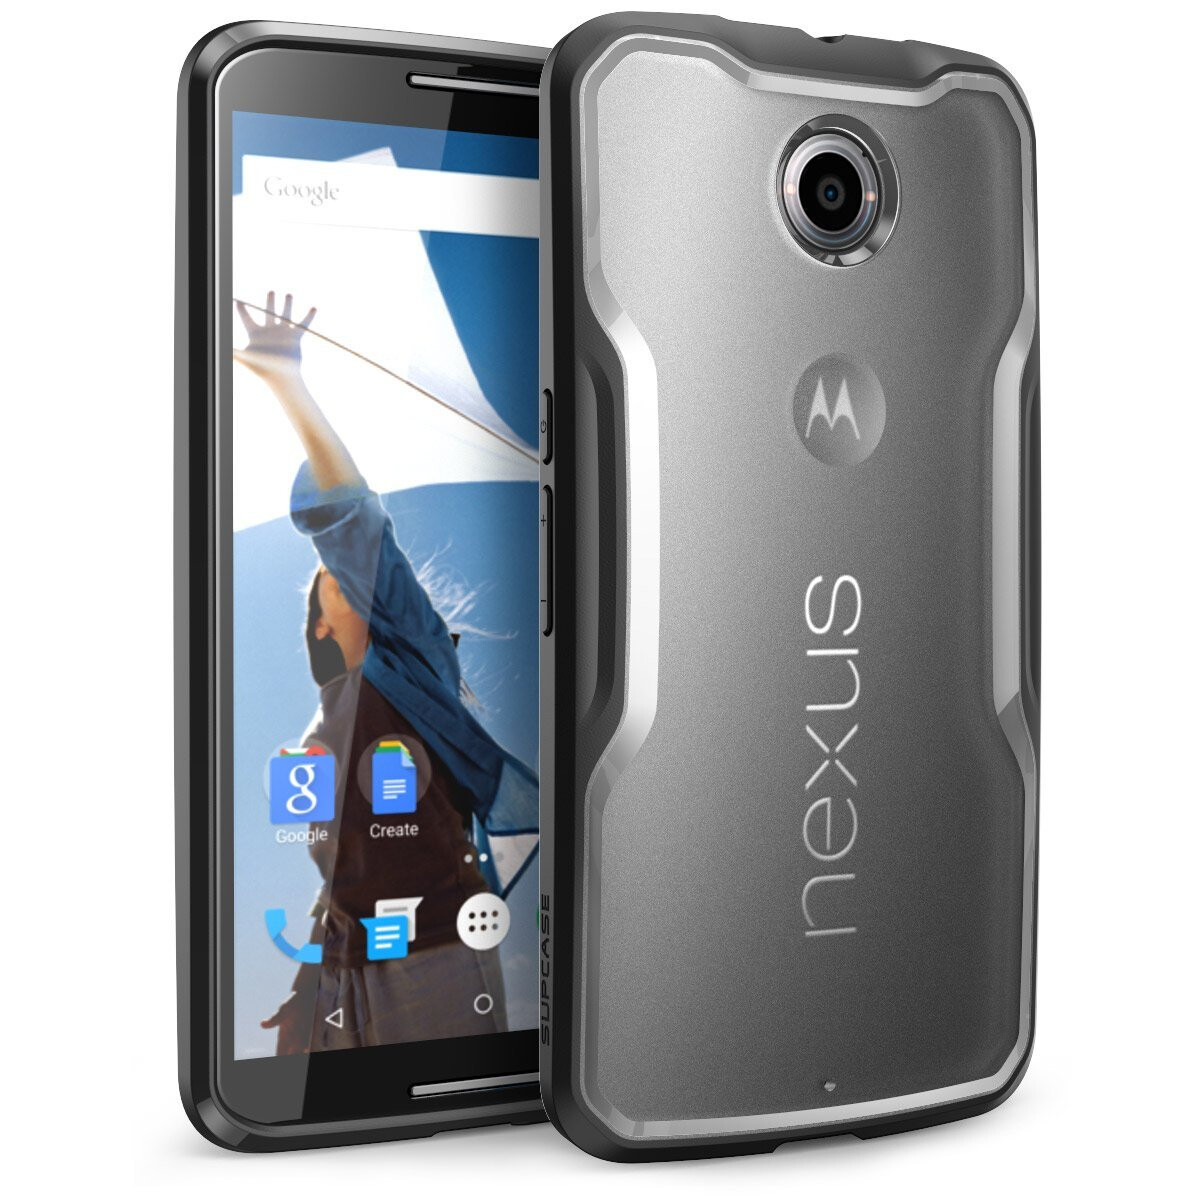 Best Google Nexus 6 cases and covers